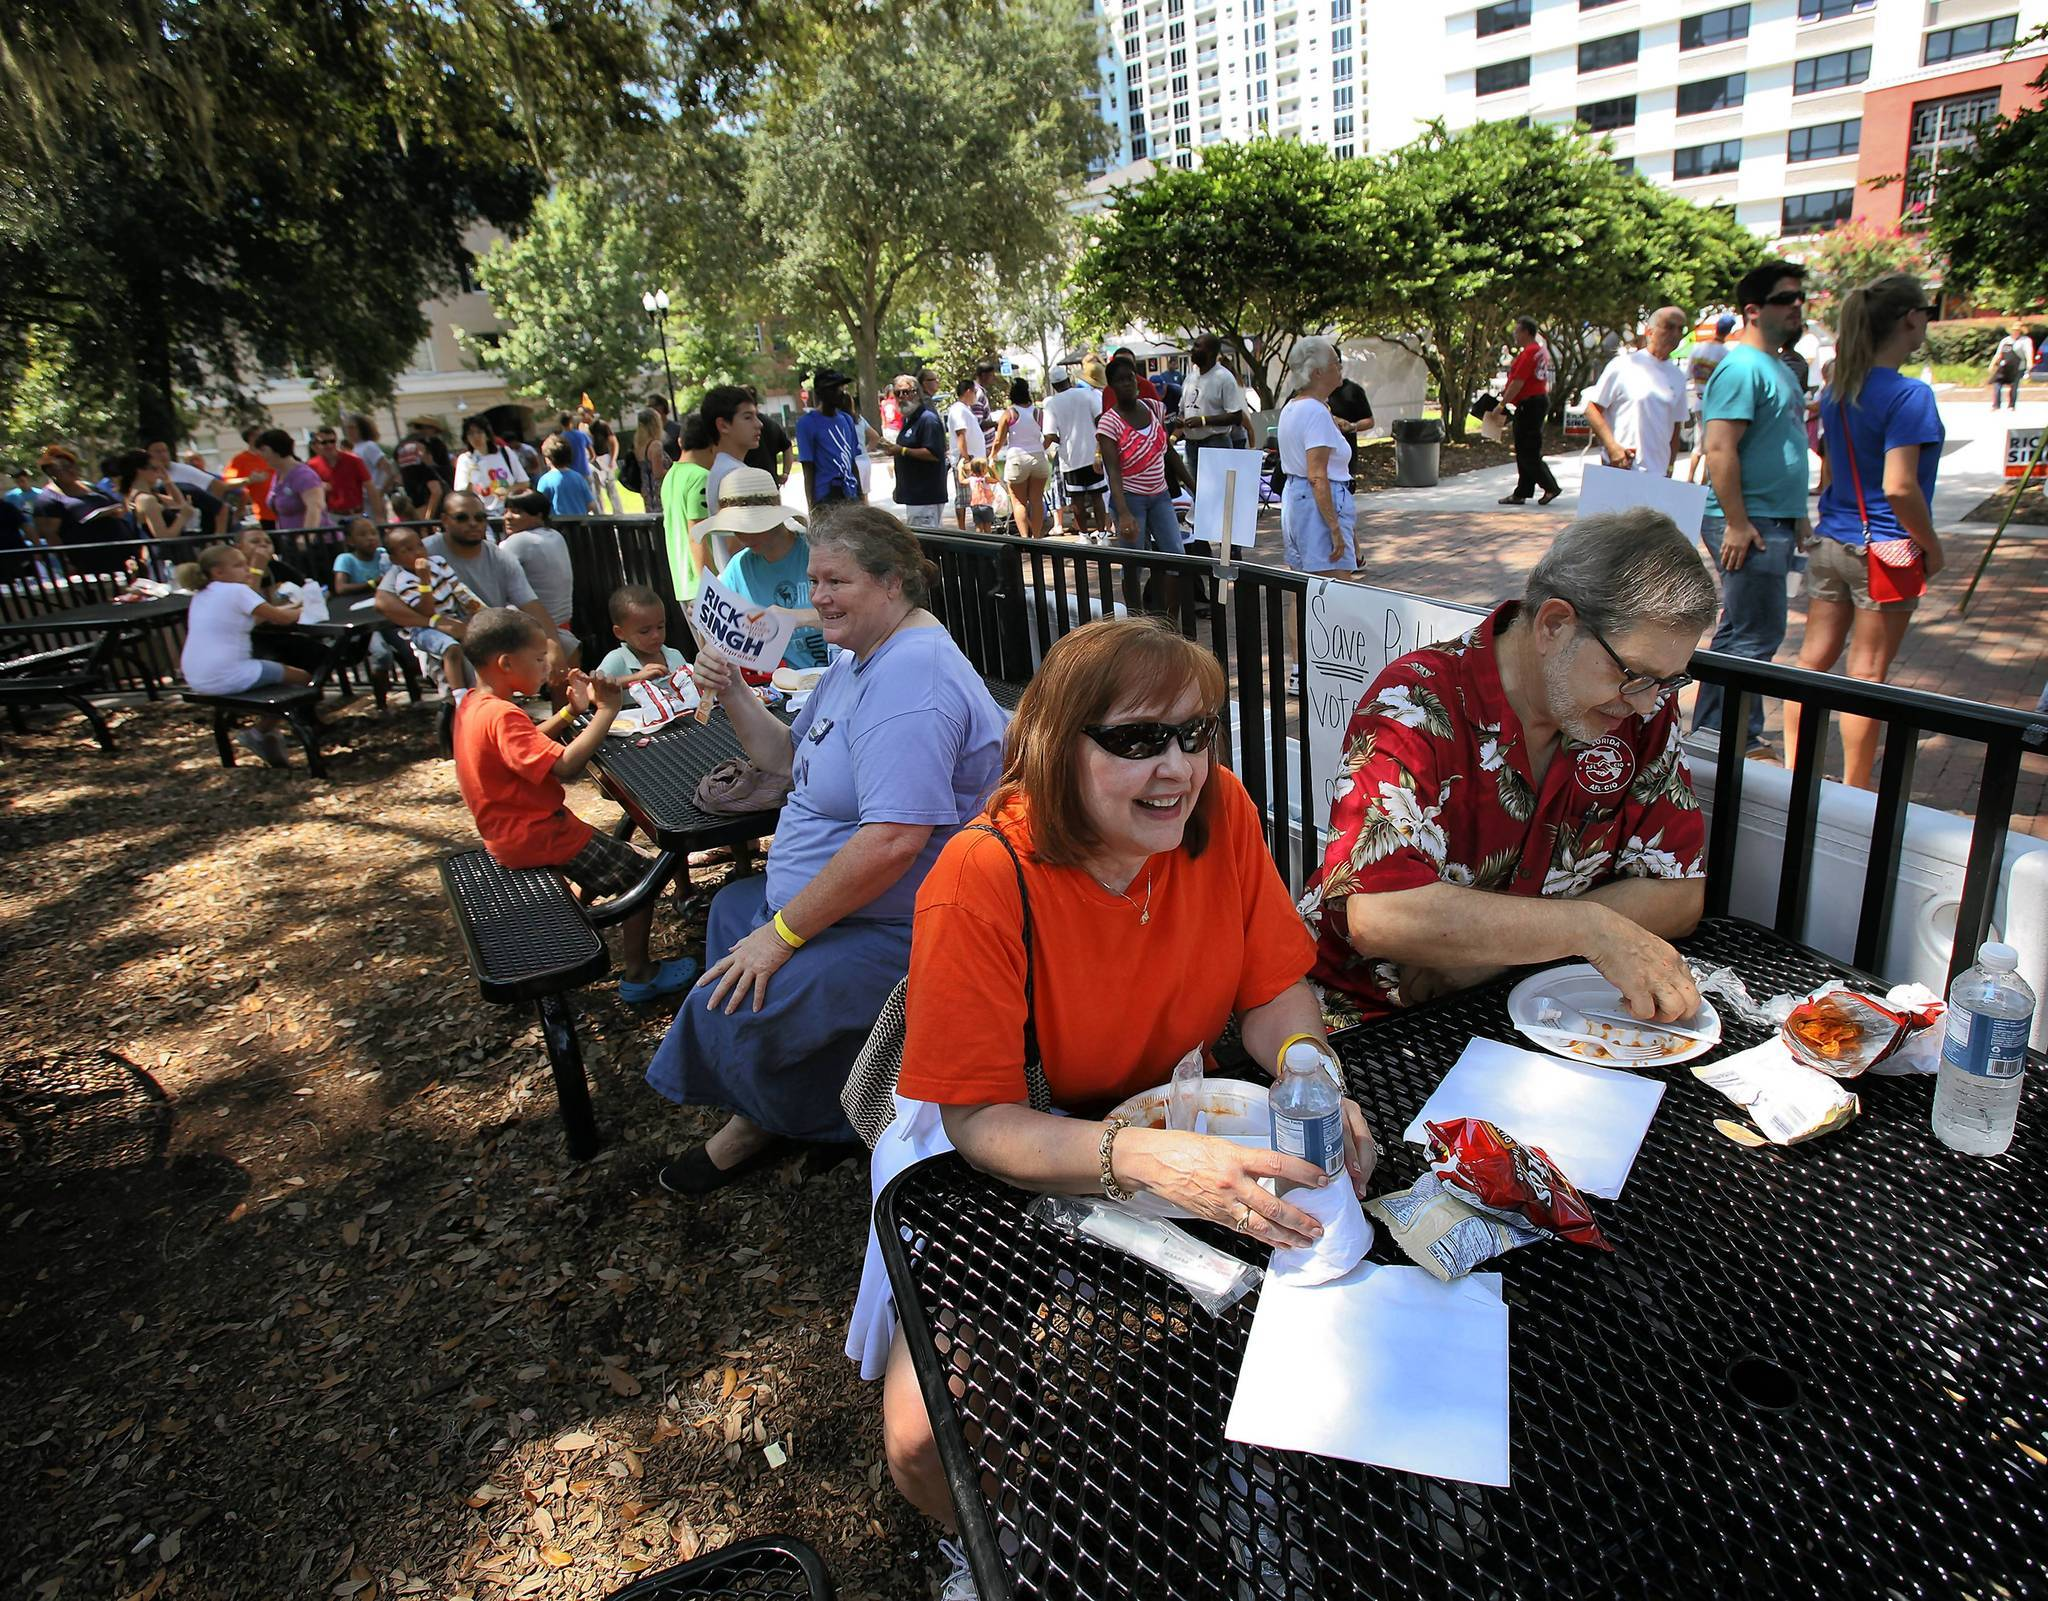 Carol and Bill Barnes eat and listen to people speaking at Lake Eola Park on on September 3, 2012, during the Central Florida Labor Council Labor Day Picnic & Rally. Bill is the President of the IATSE Local 631, International Alliance of Theatrical Stage Employees.